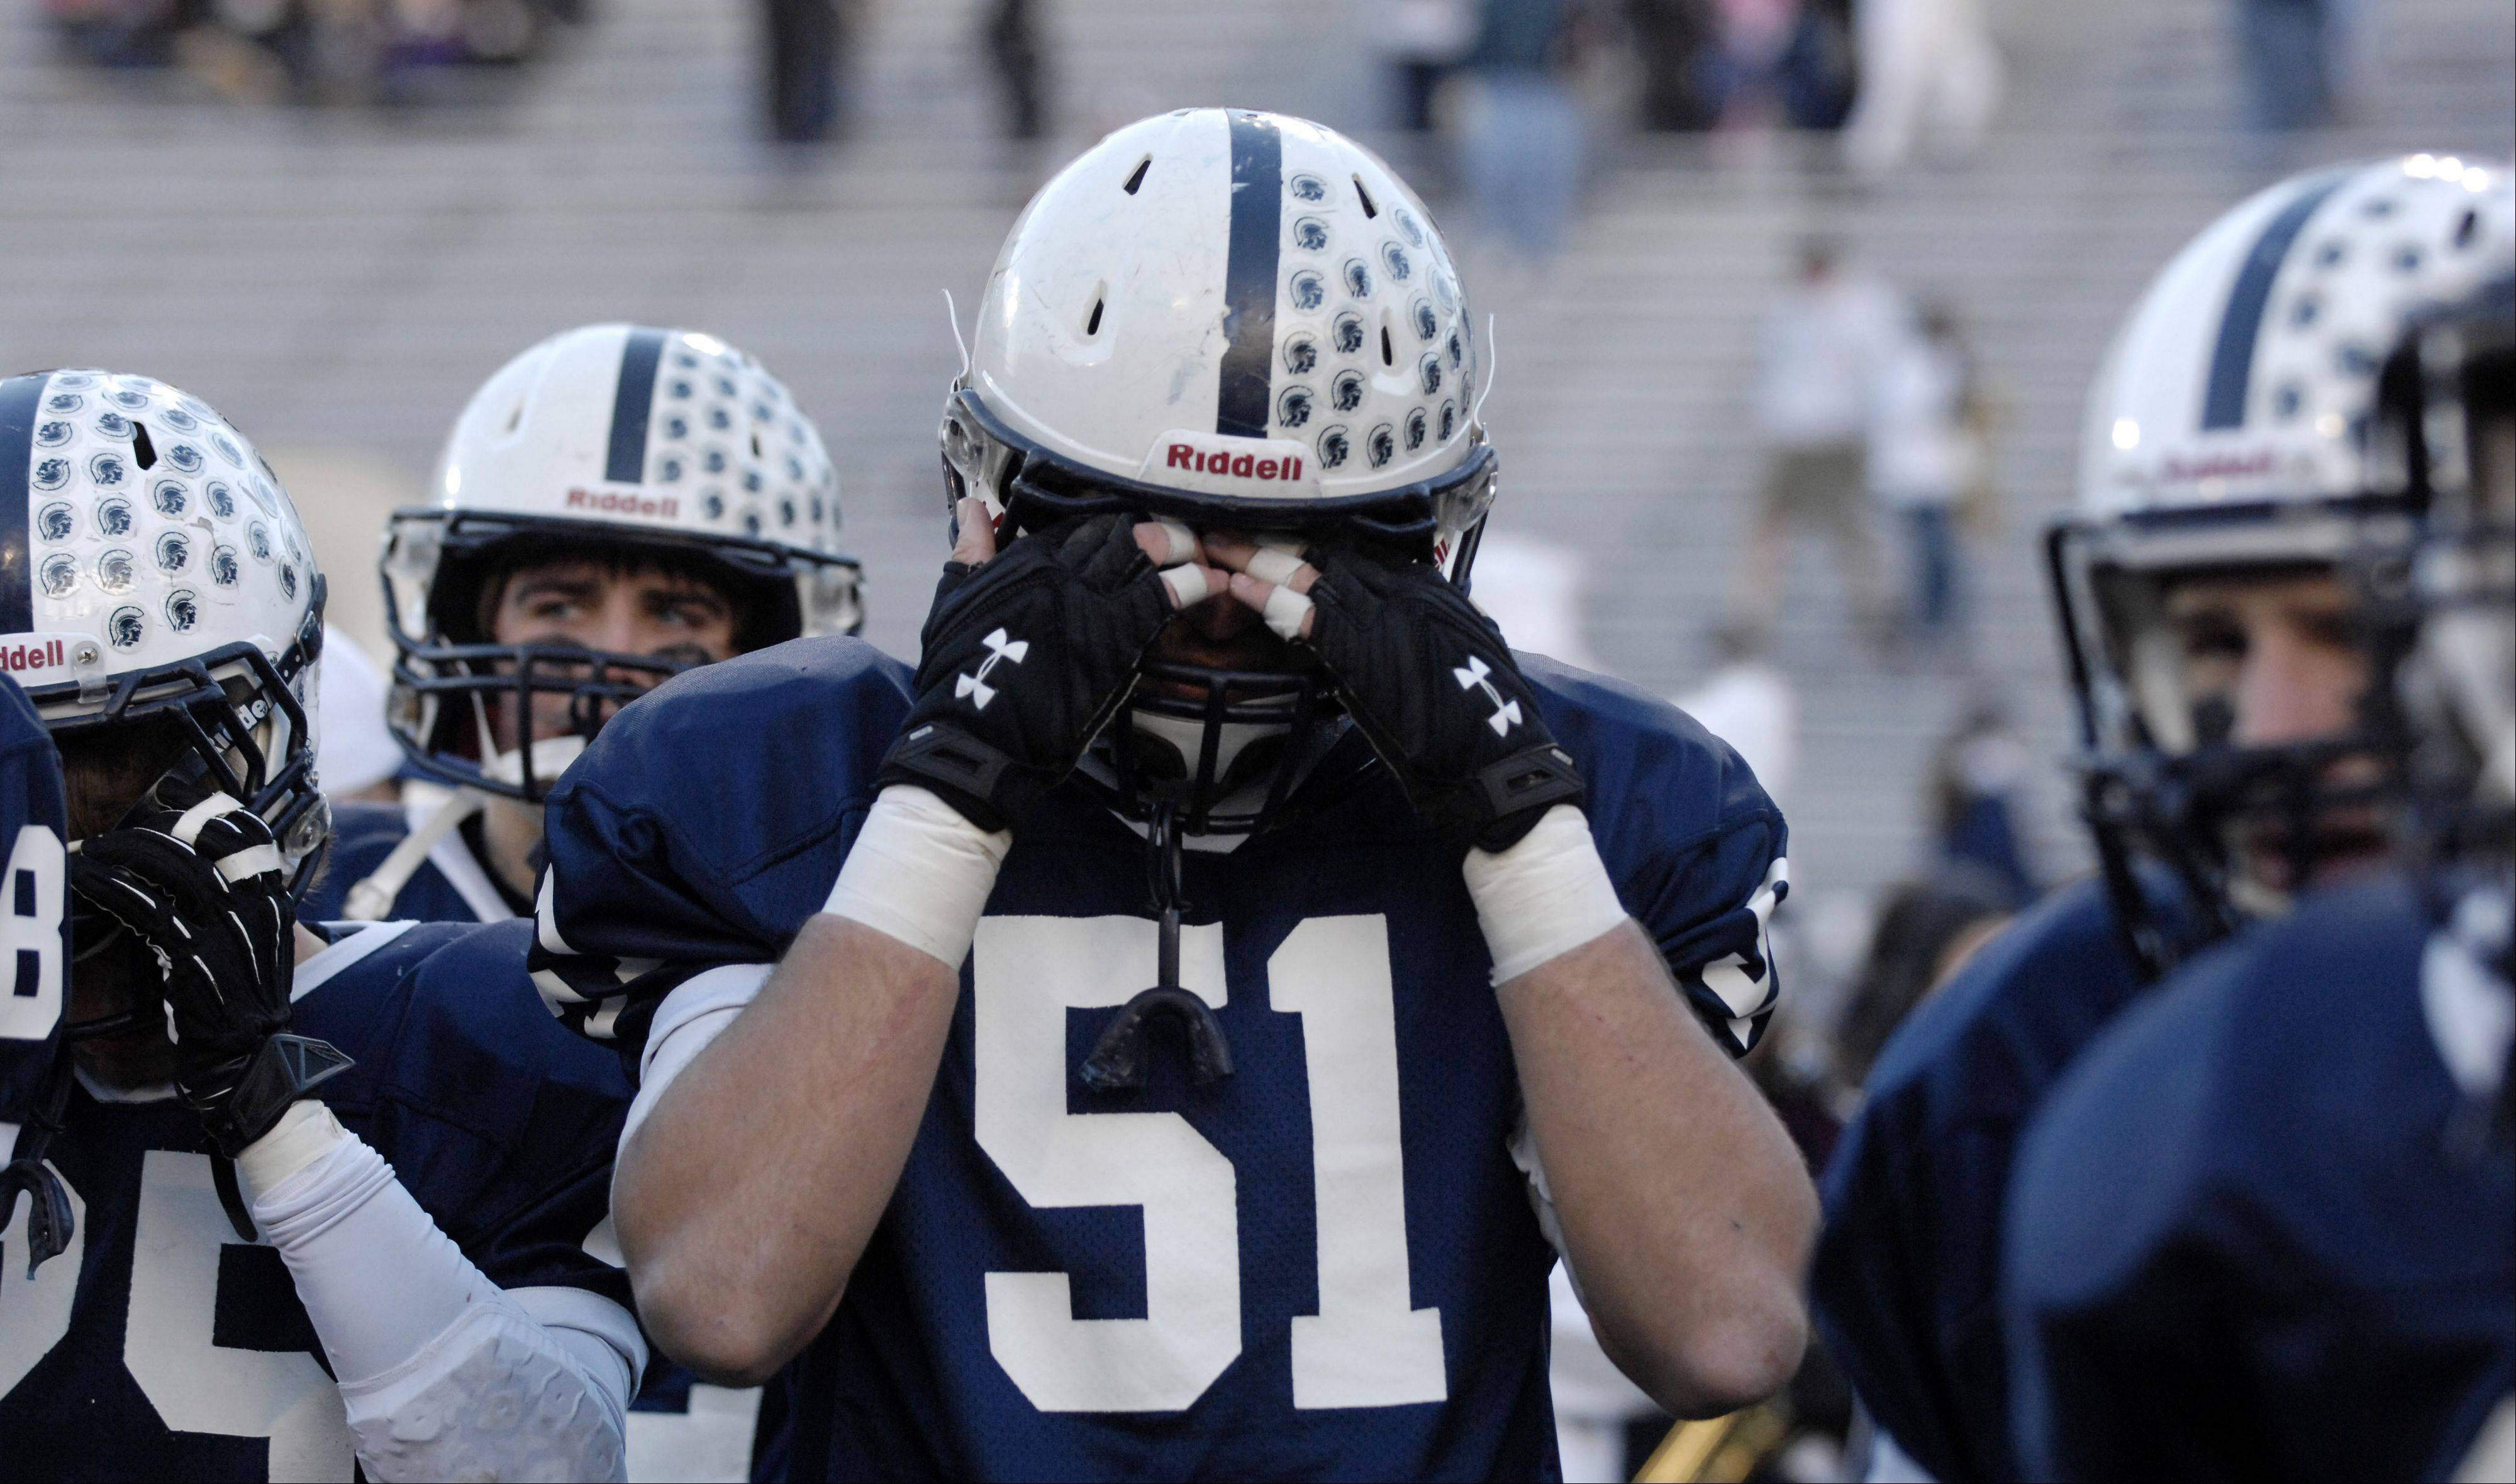 Cary-Grove's Kyle Matthiesen (51) and his teammates react to their 33-26 loss to Crete-Monee in Saturday's Class 6A state title game at Memorial Stadium in Champaign.